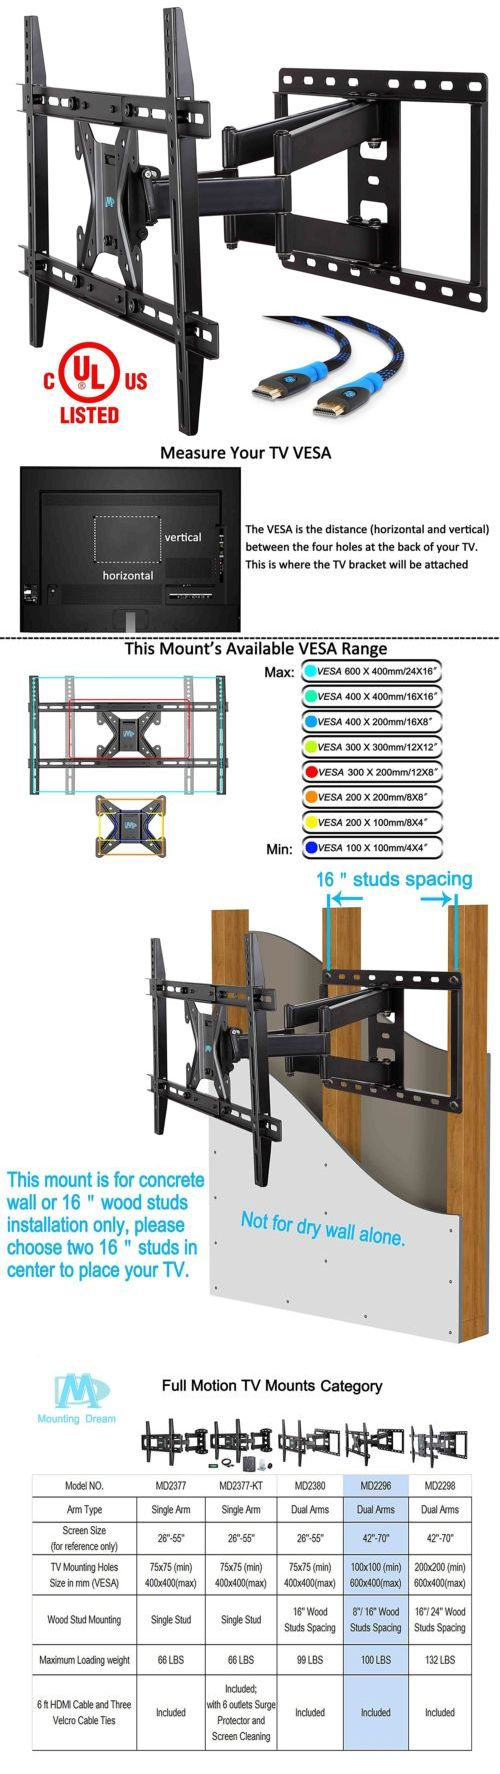 TV Mounts and Brackets: Tv Wall Mount Bracket Full Motion Articulating Arm Stud Led Lcd Oled Flat Screen -> BUY IT NOW ONLY: $67.99 on eBay!